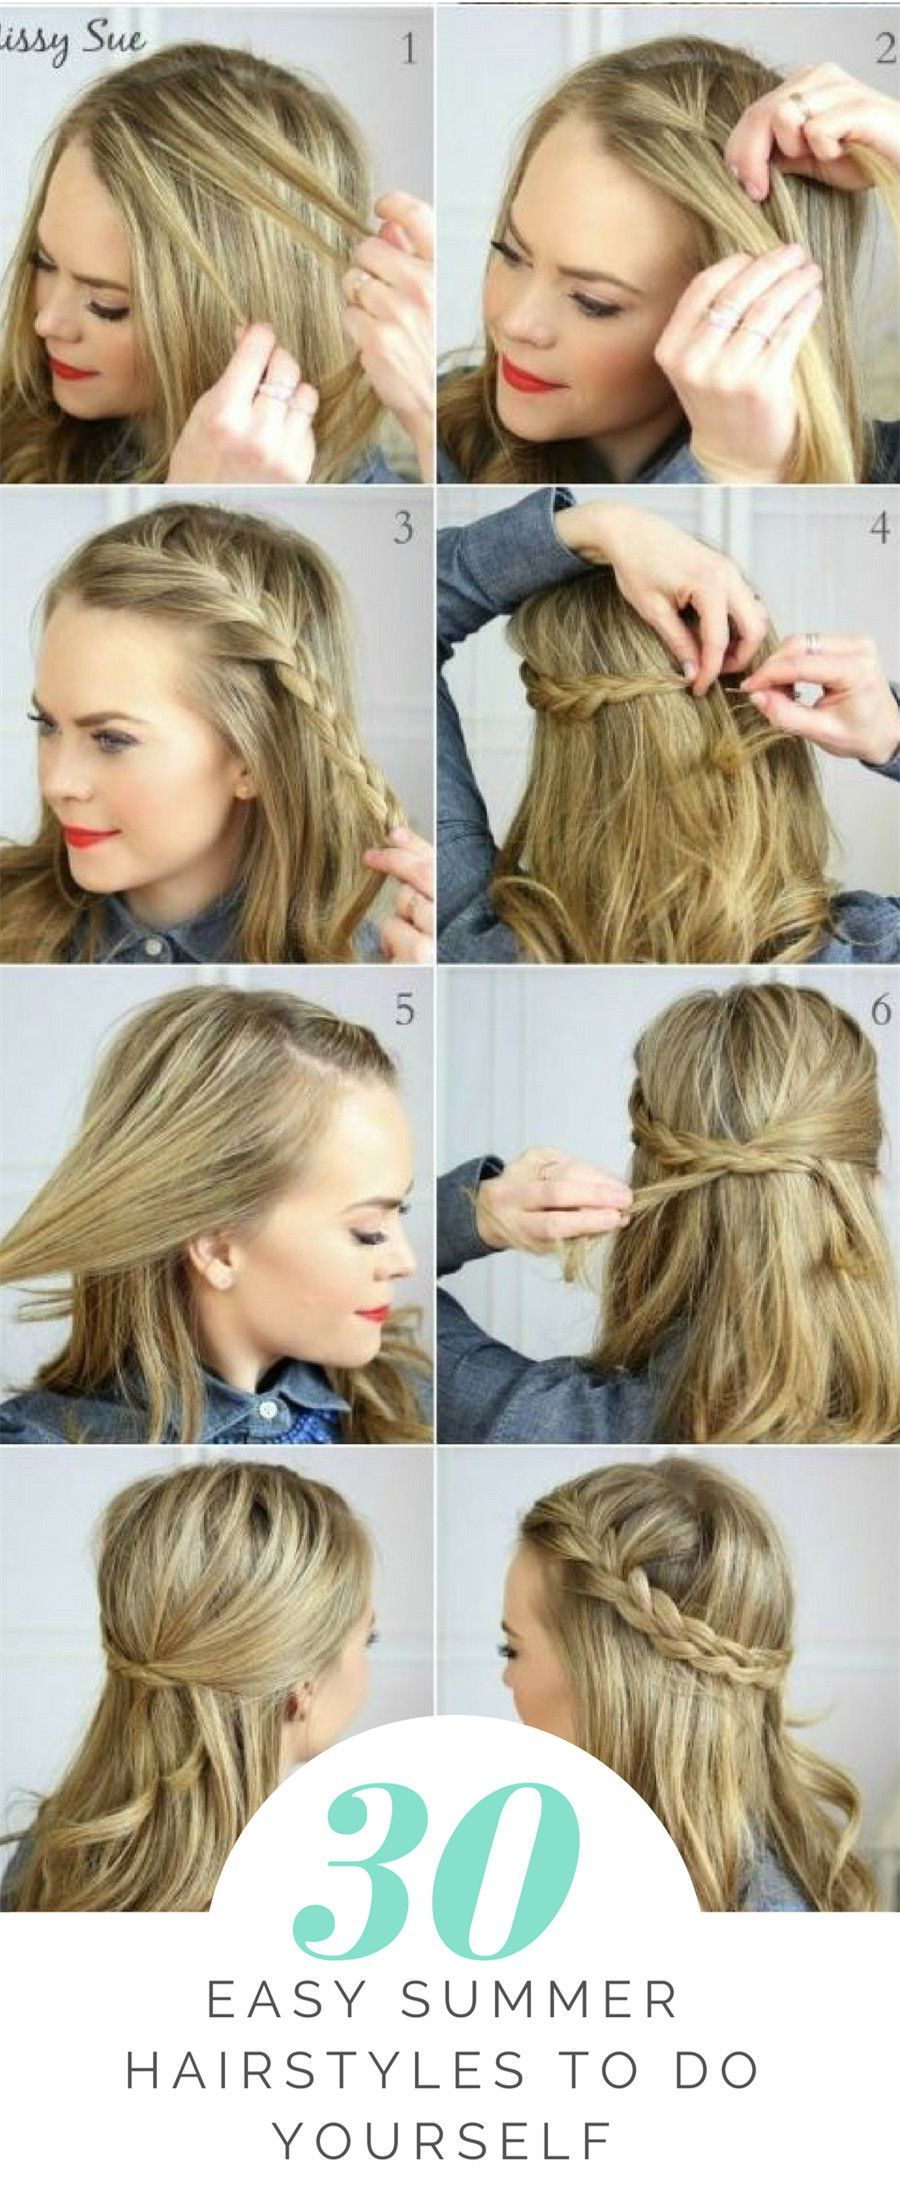 Best Hairstyle For A 10 Year Old Woman  Easy hairstyles for